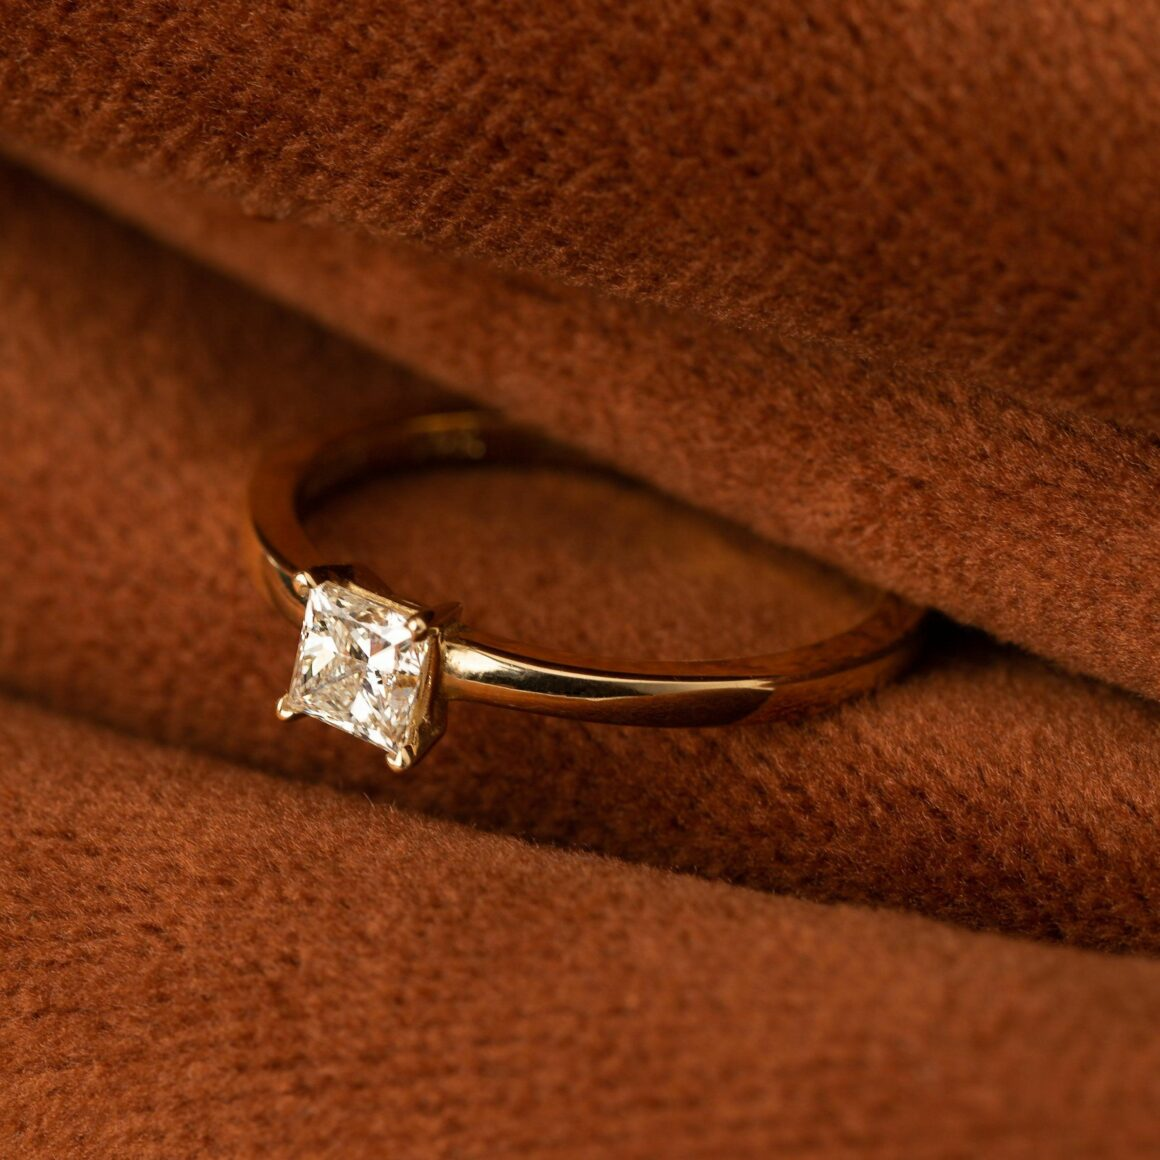 Conflict-Free Minimalist Engagement Ring Brands - Aurate